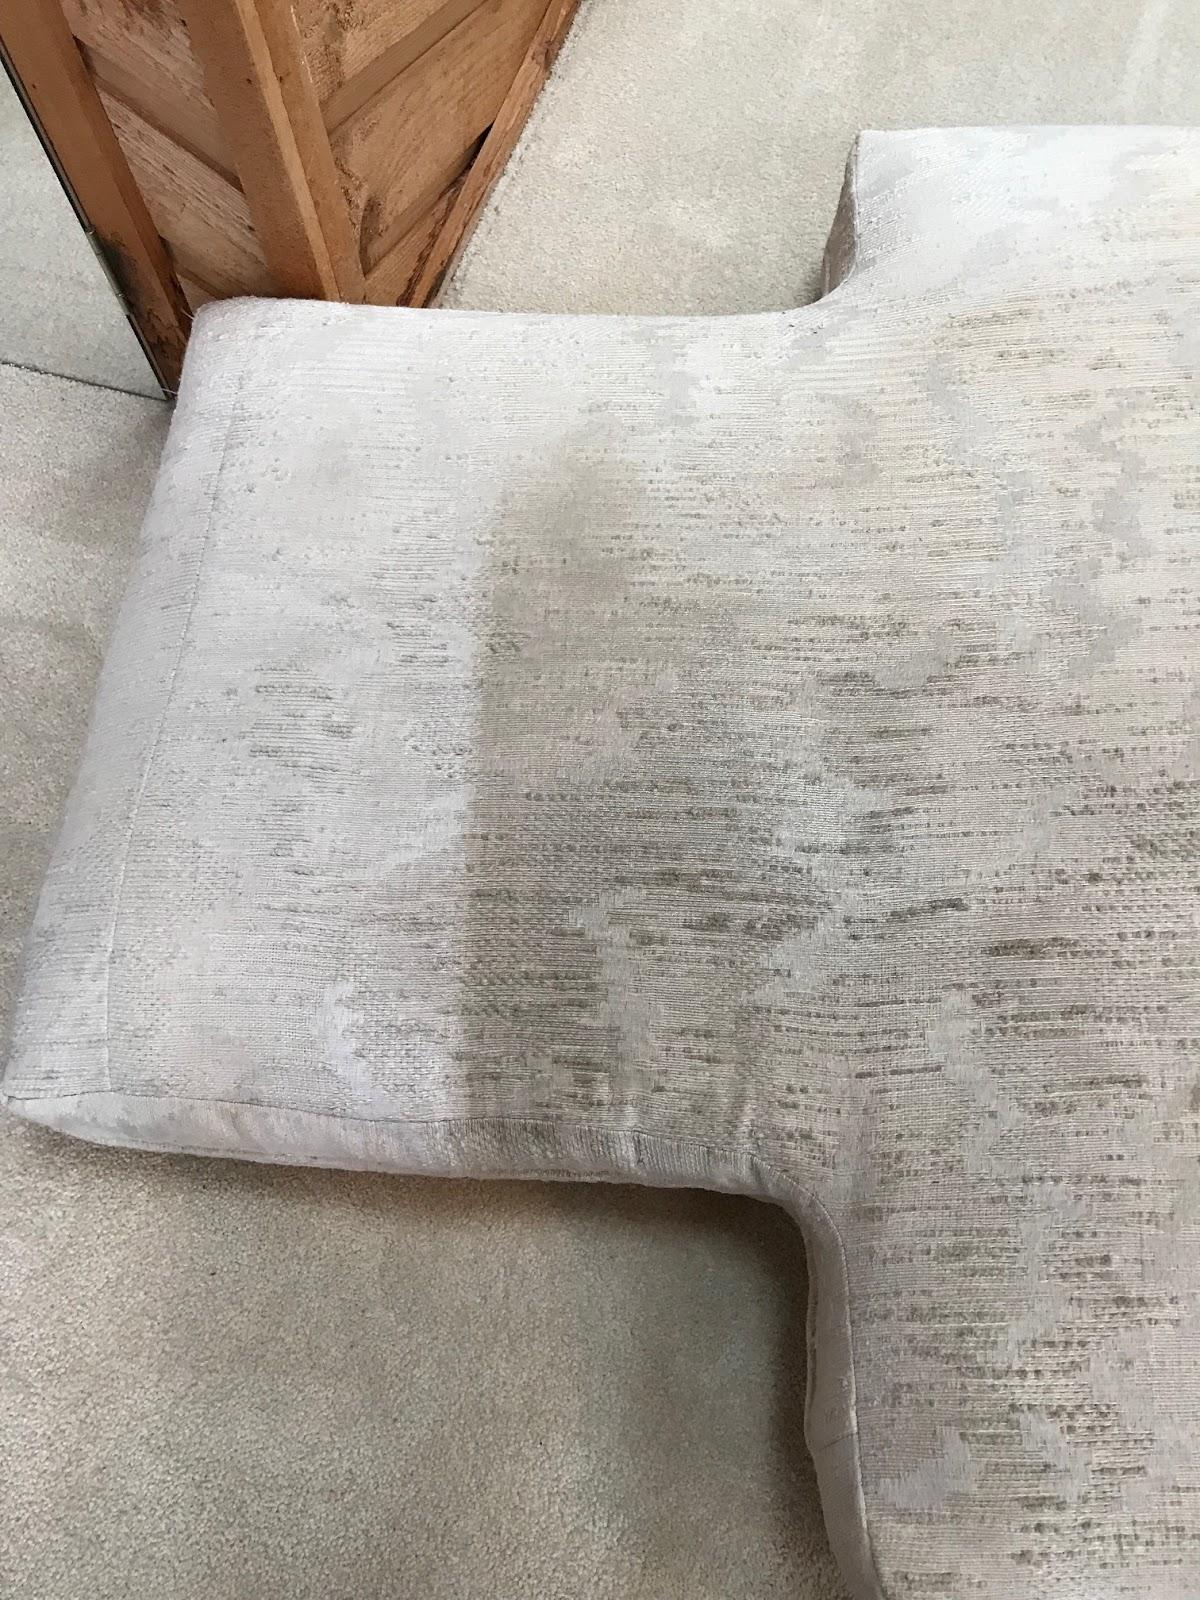 Before and after Hammond Knoll cleaned a cushion